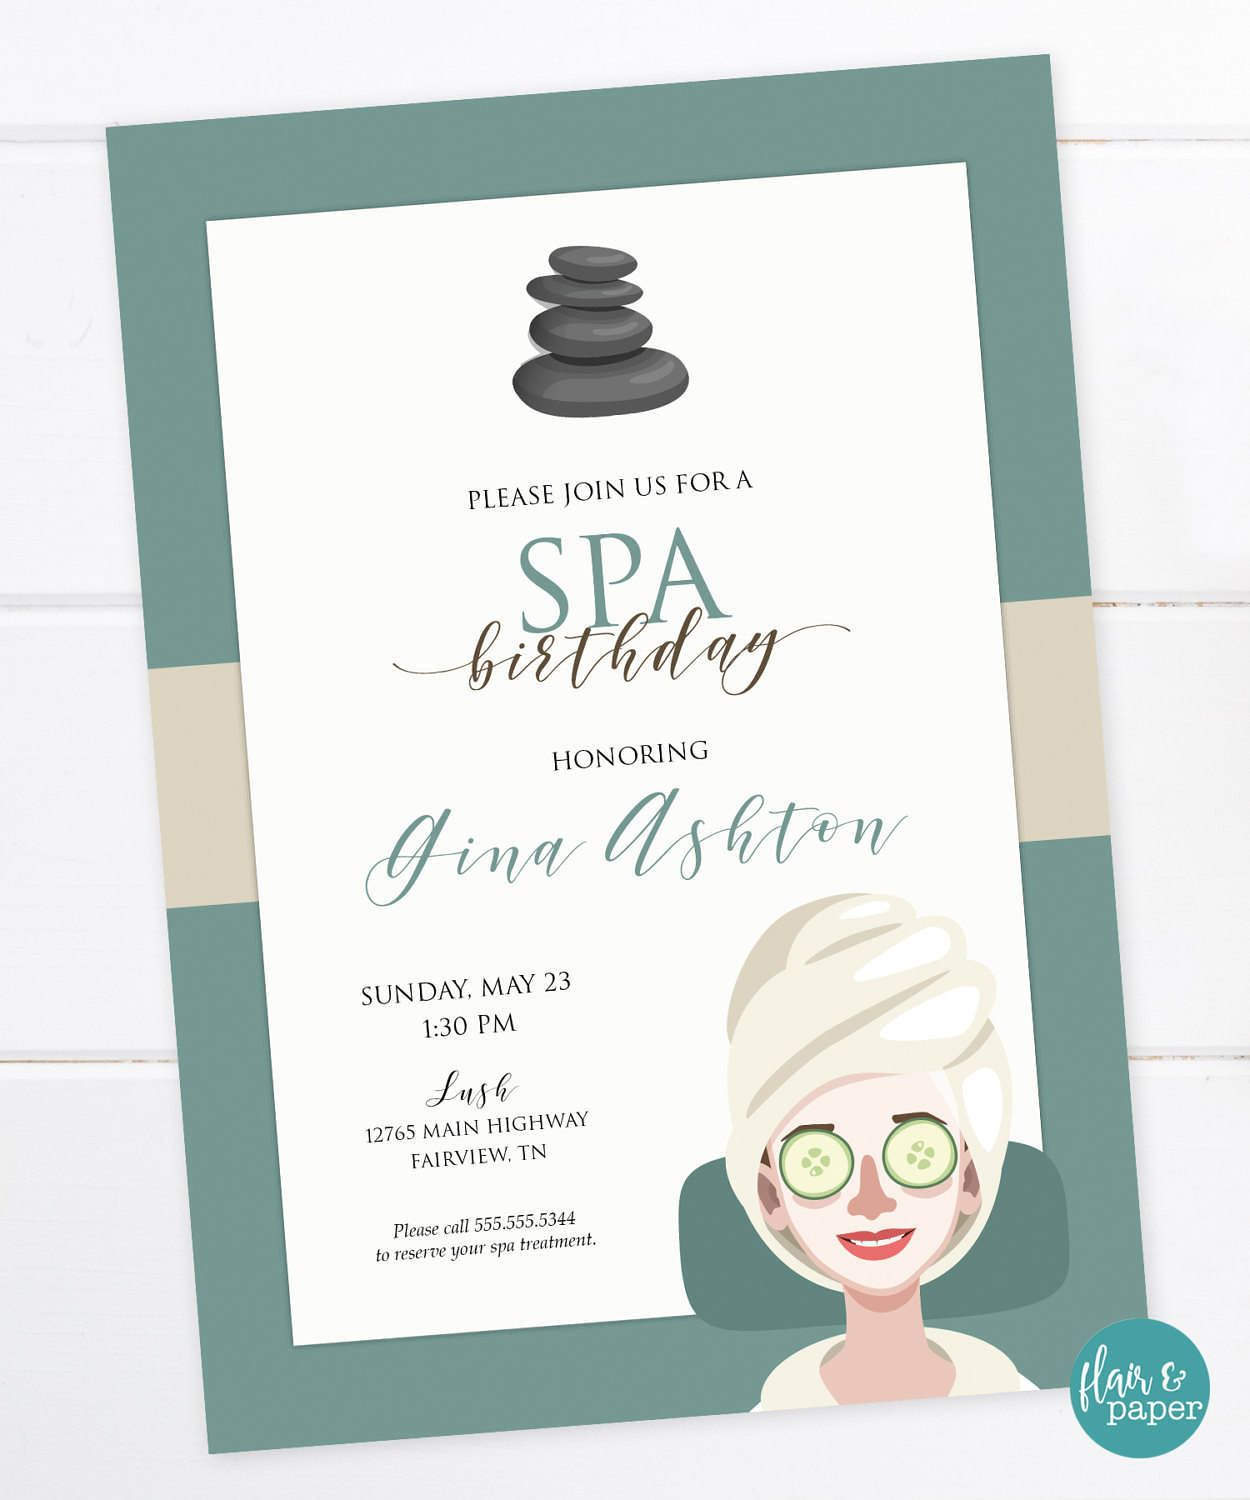 Spa Birthday Invitation Spa Day Spa Party Invitation Spa Bridal Shower Baby Shower Pamper Me Party Digital Printable File By Flairandpaper On Etsy